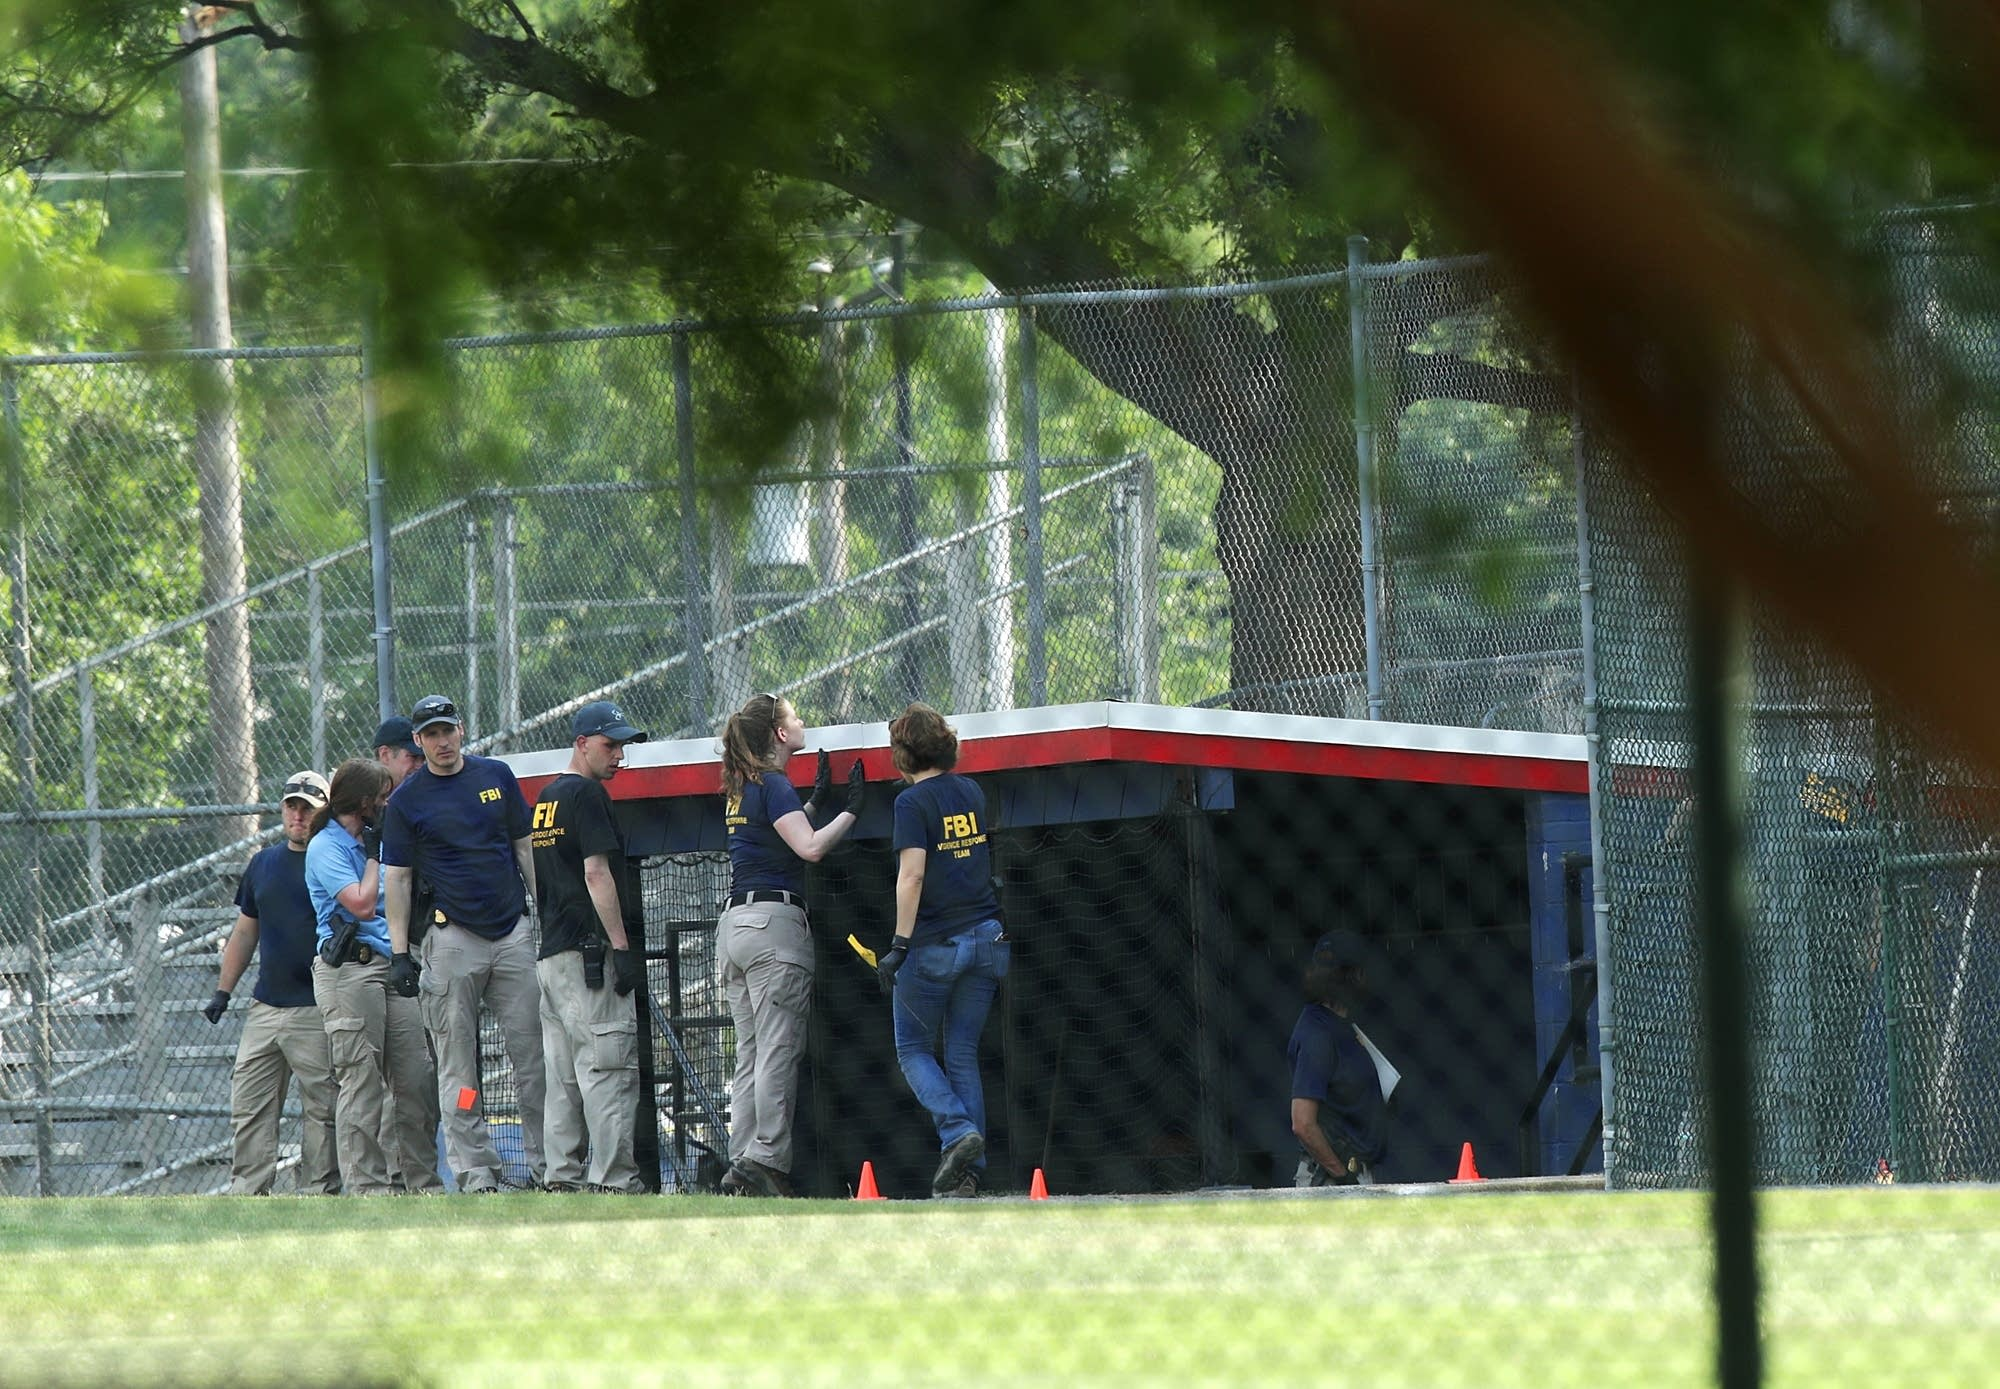 Scalise upgraded to serious condition; shooter had list of names, source says